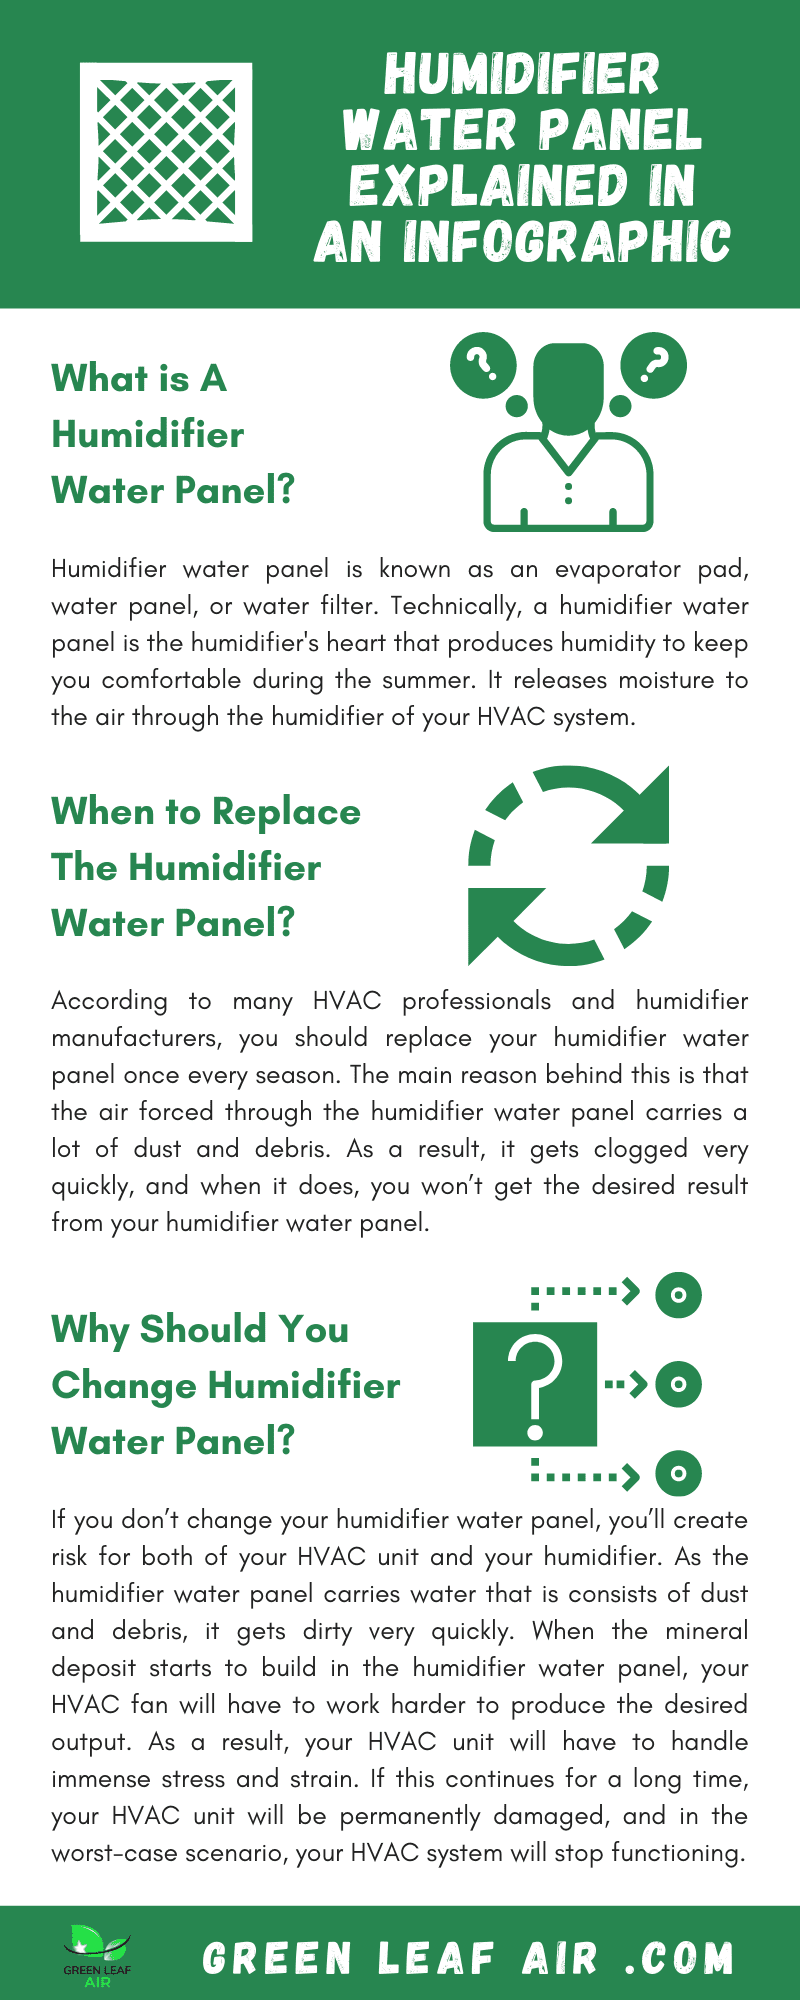 Humidifier Water Panel Explained In An Infographic